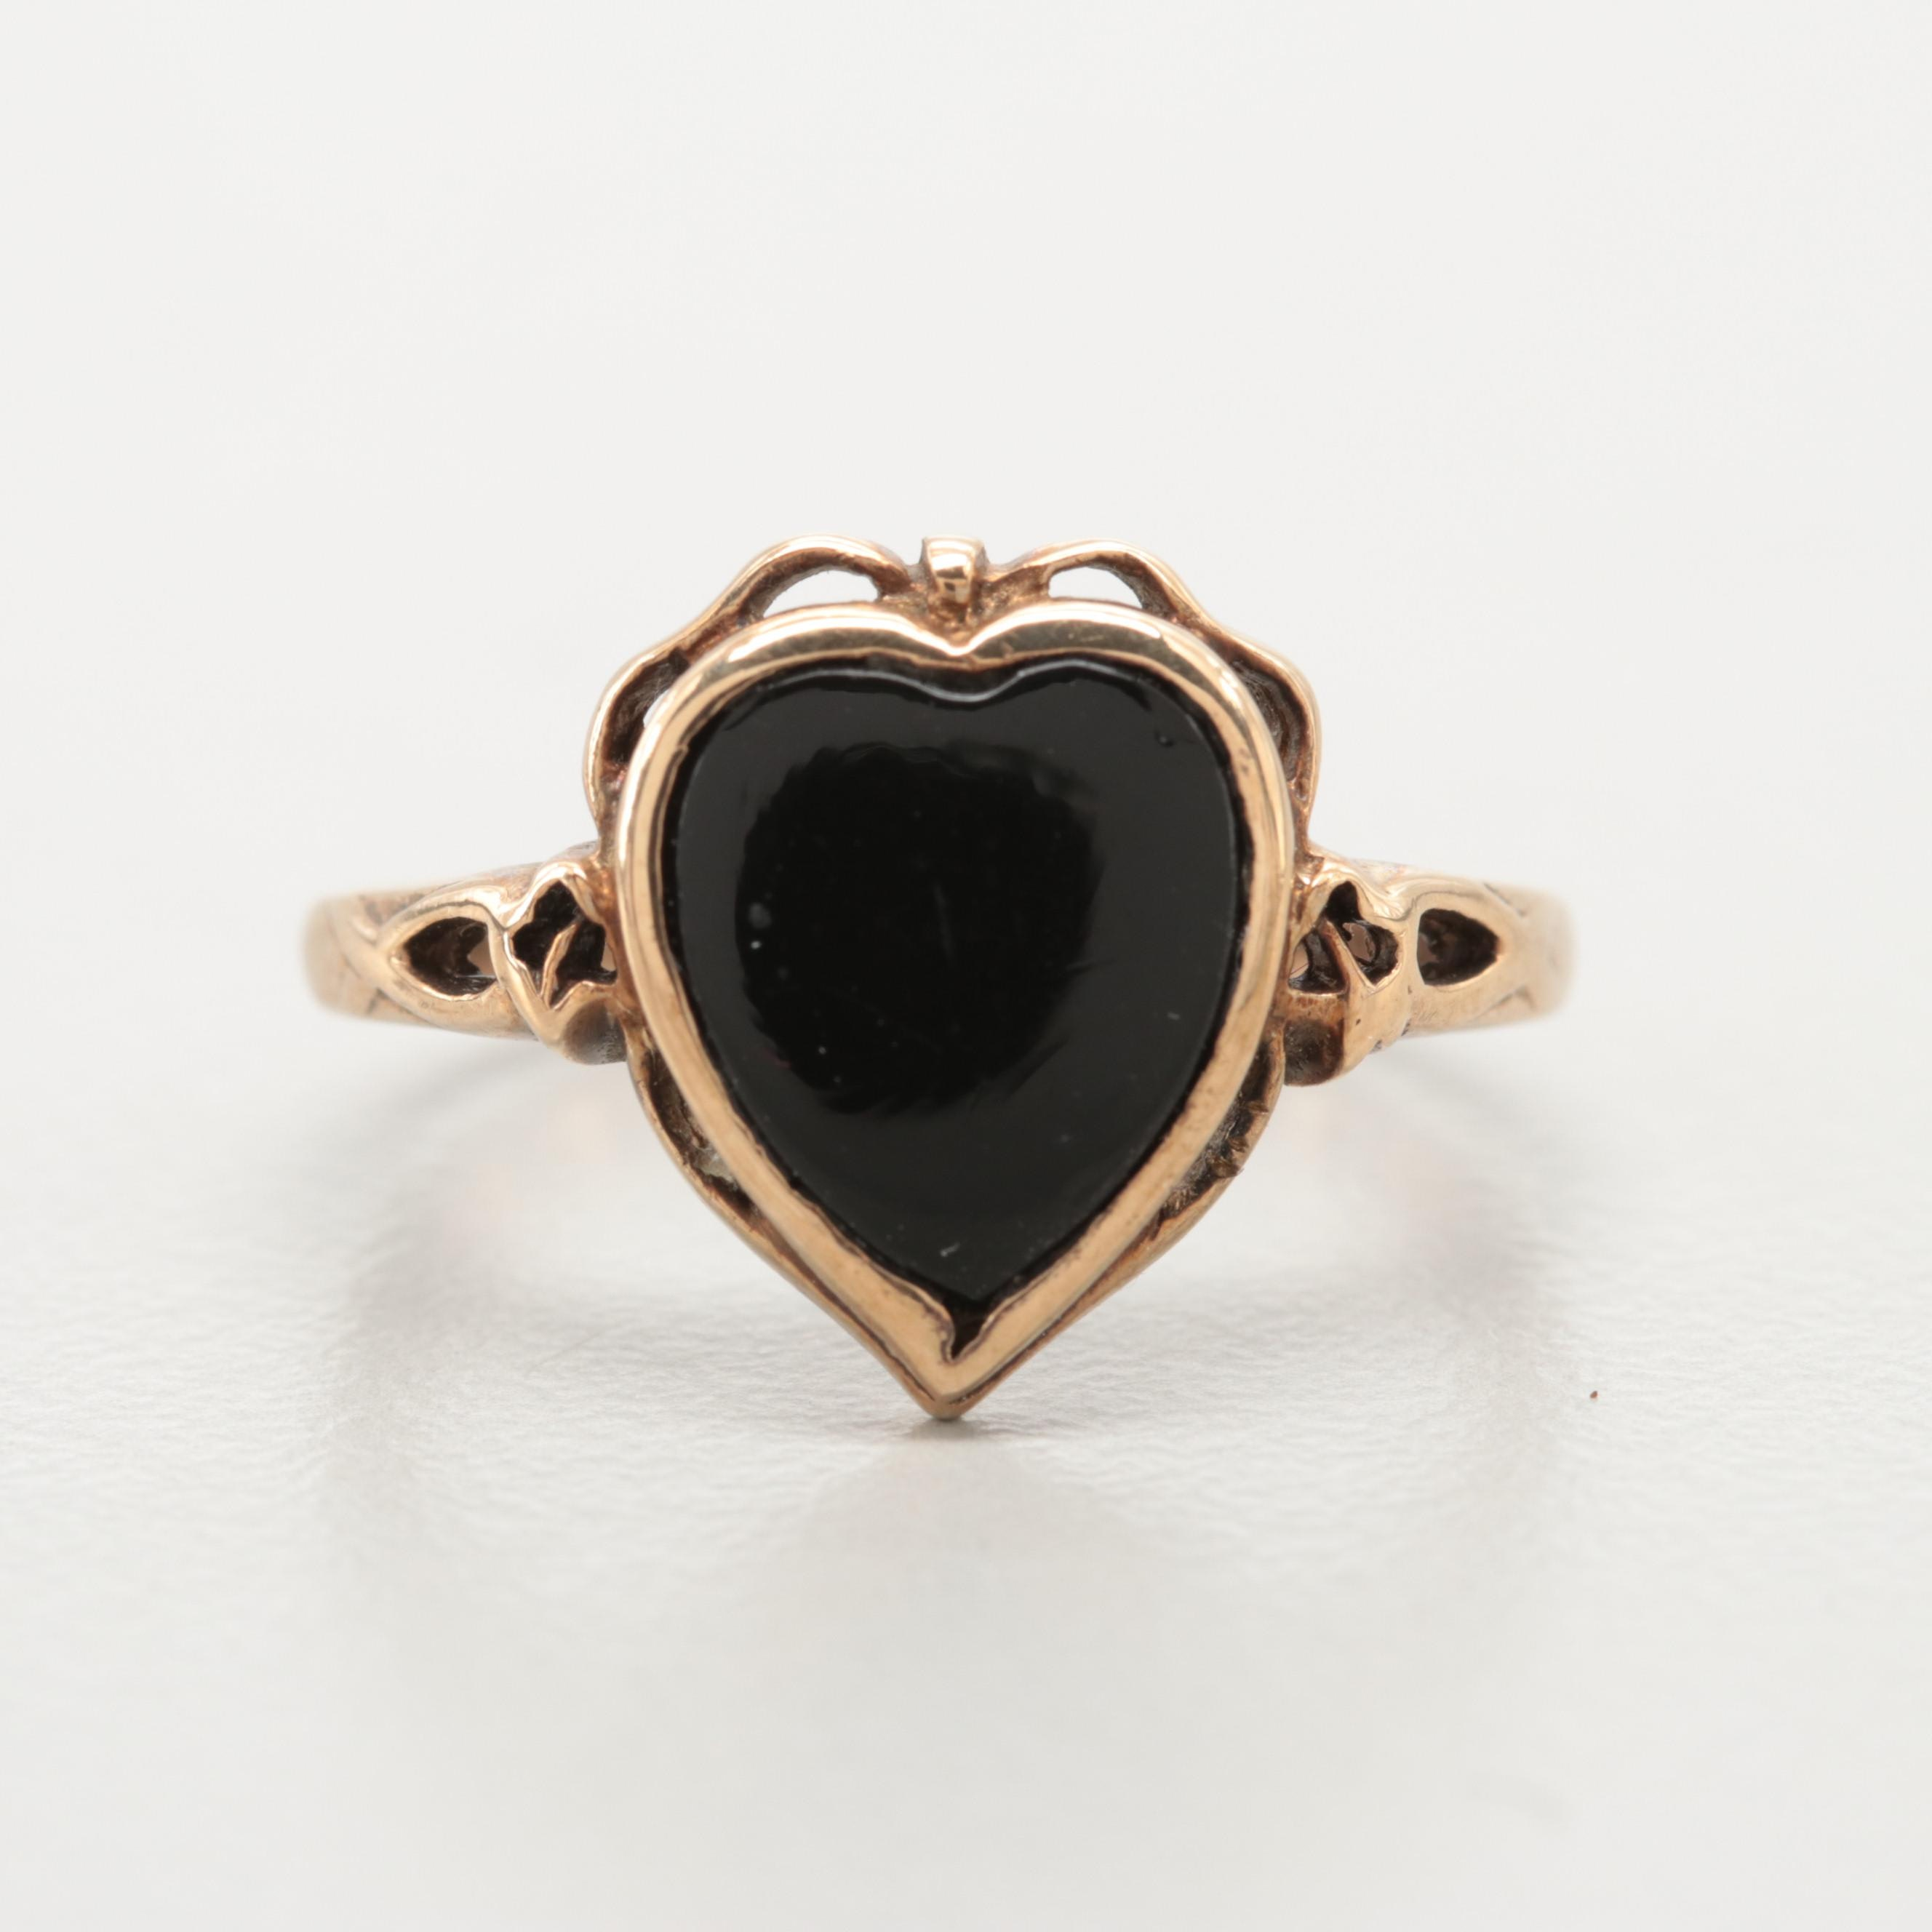 1940s Victorian Revival 10K Yellow Gold Black Onyx Heart Ring